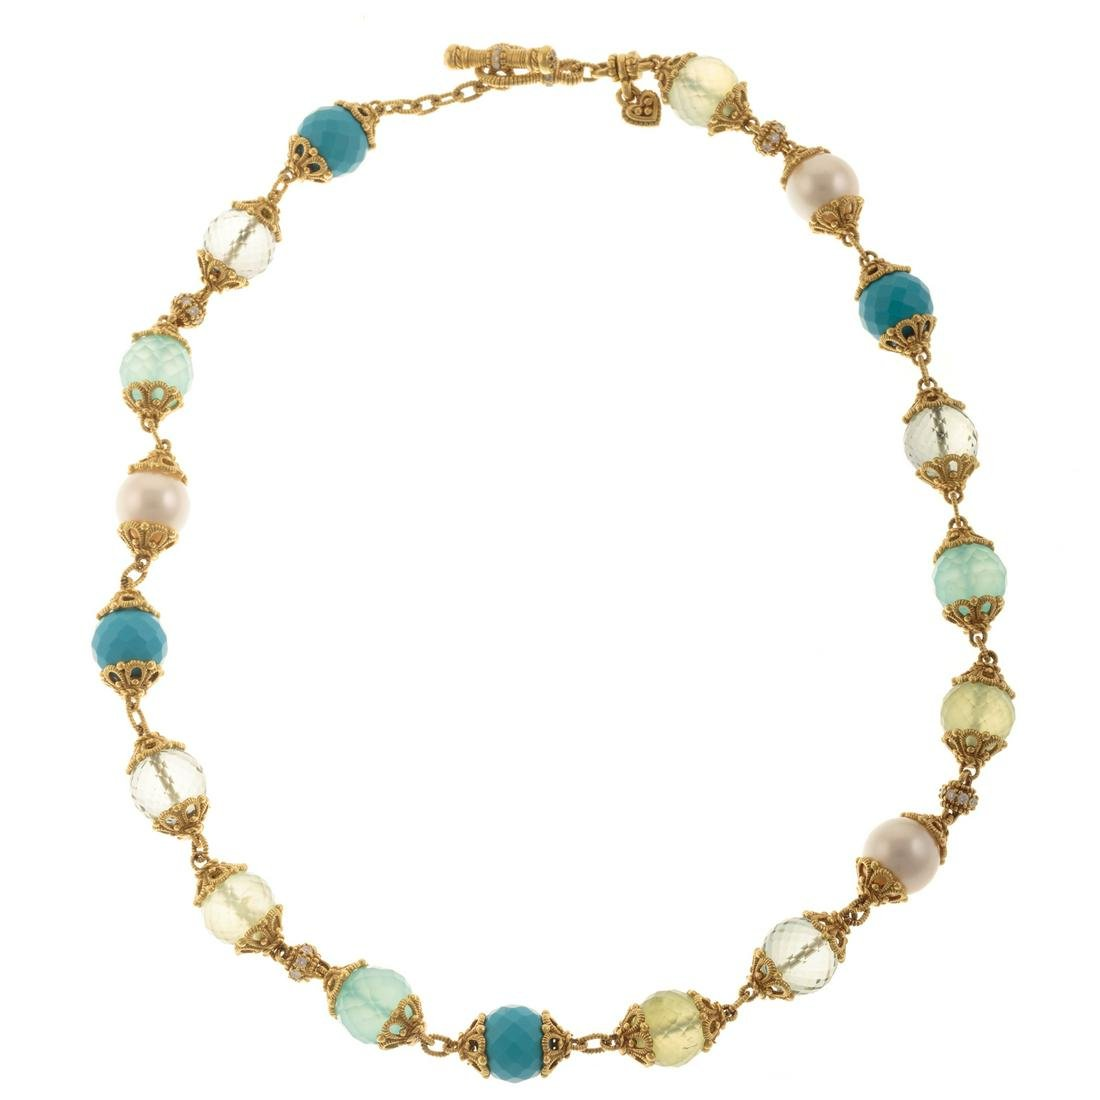 A Ladies Gem Set Necklace by J. Ripka in 18K